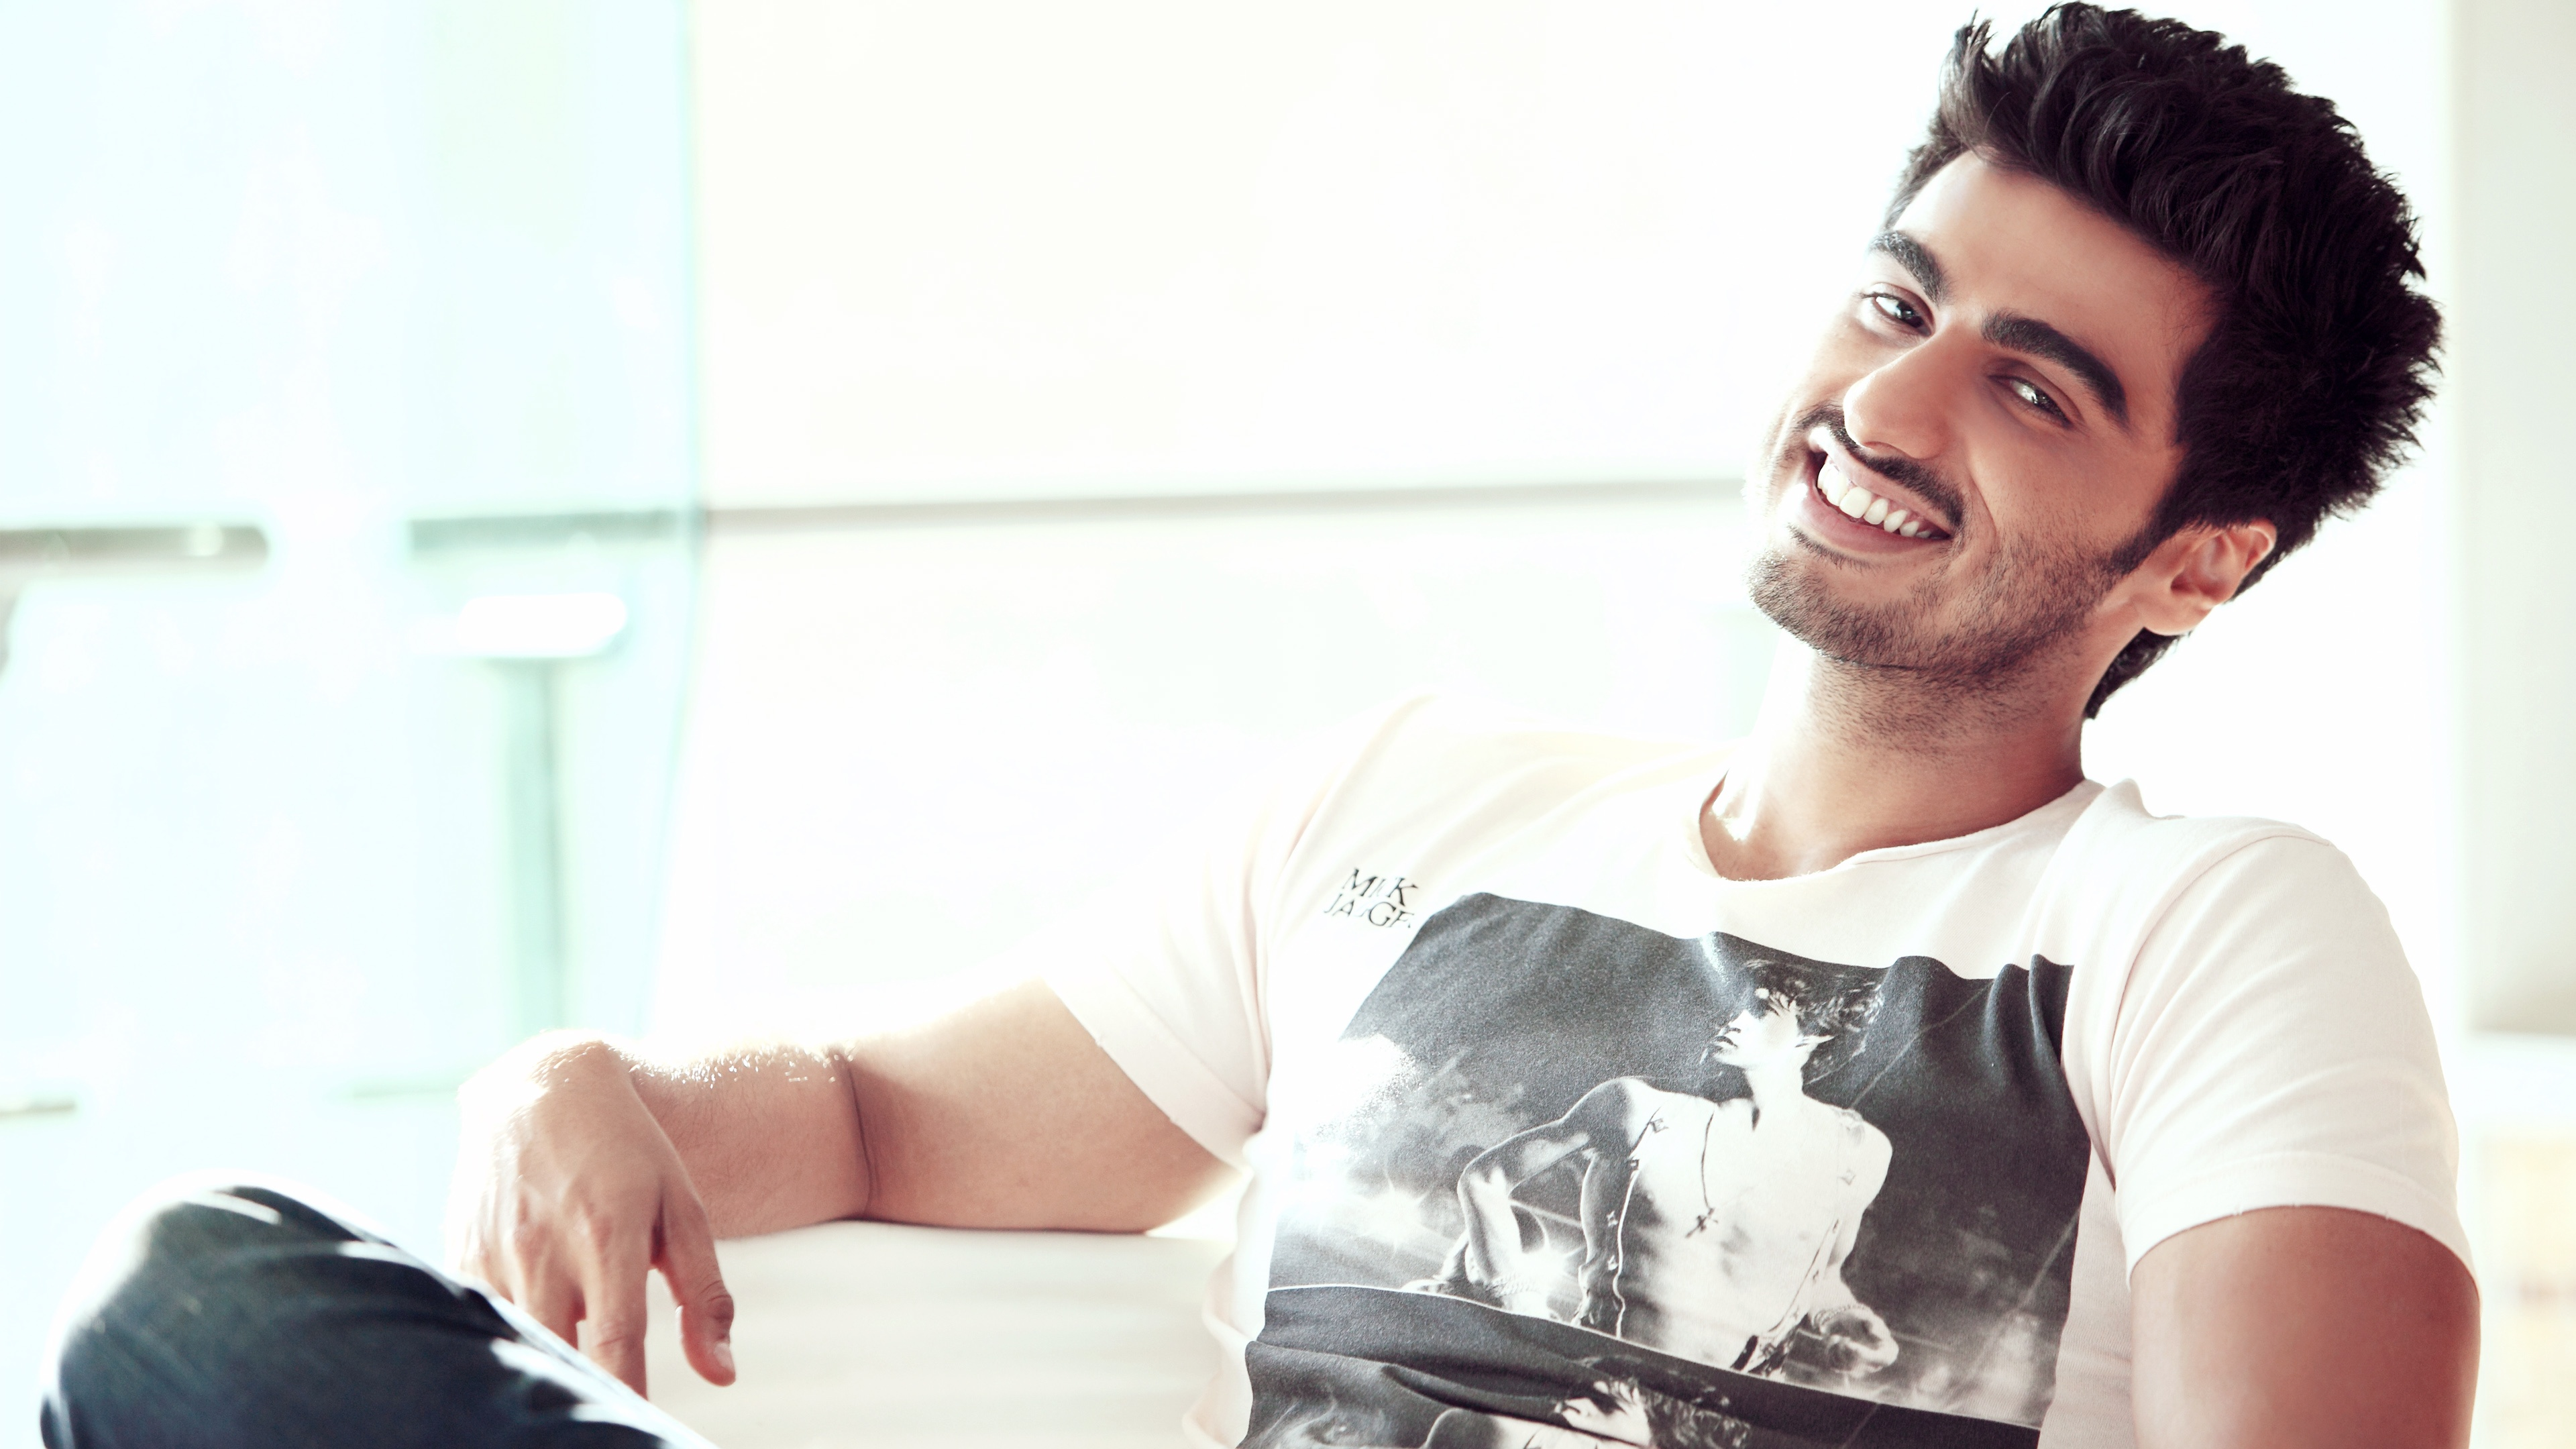 Indian Actor Arjun Kapoor Wallpapers in jpg format for download 3840x2160